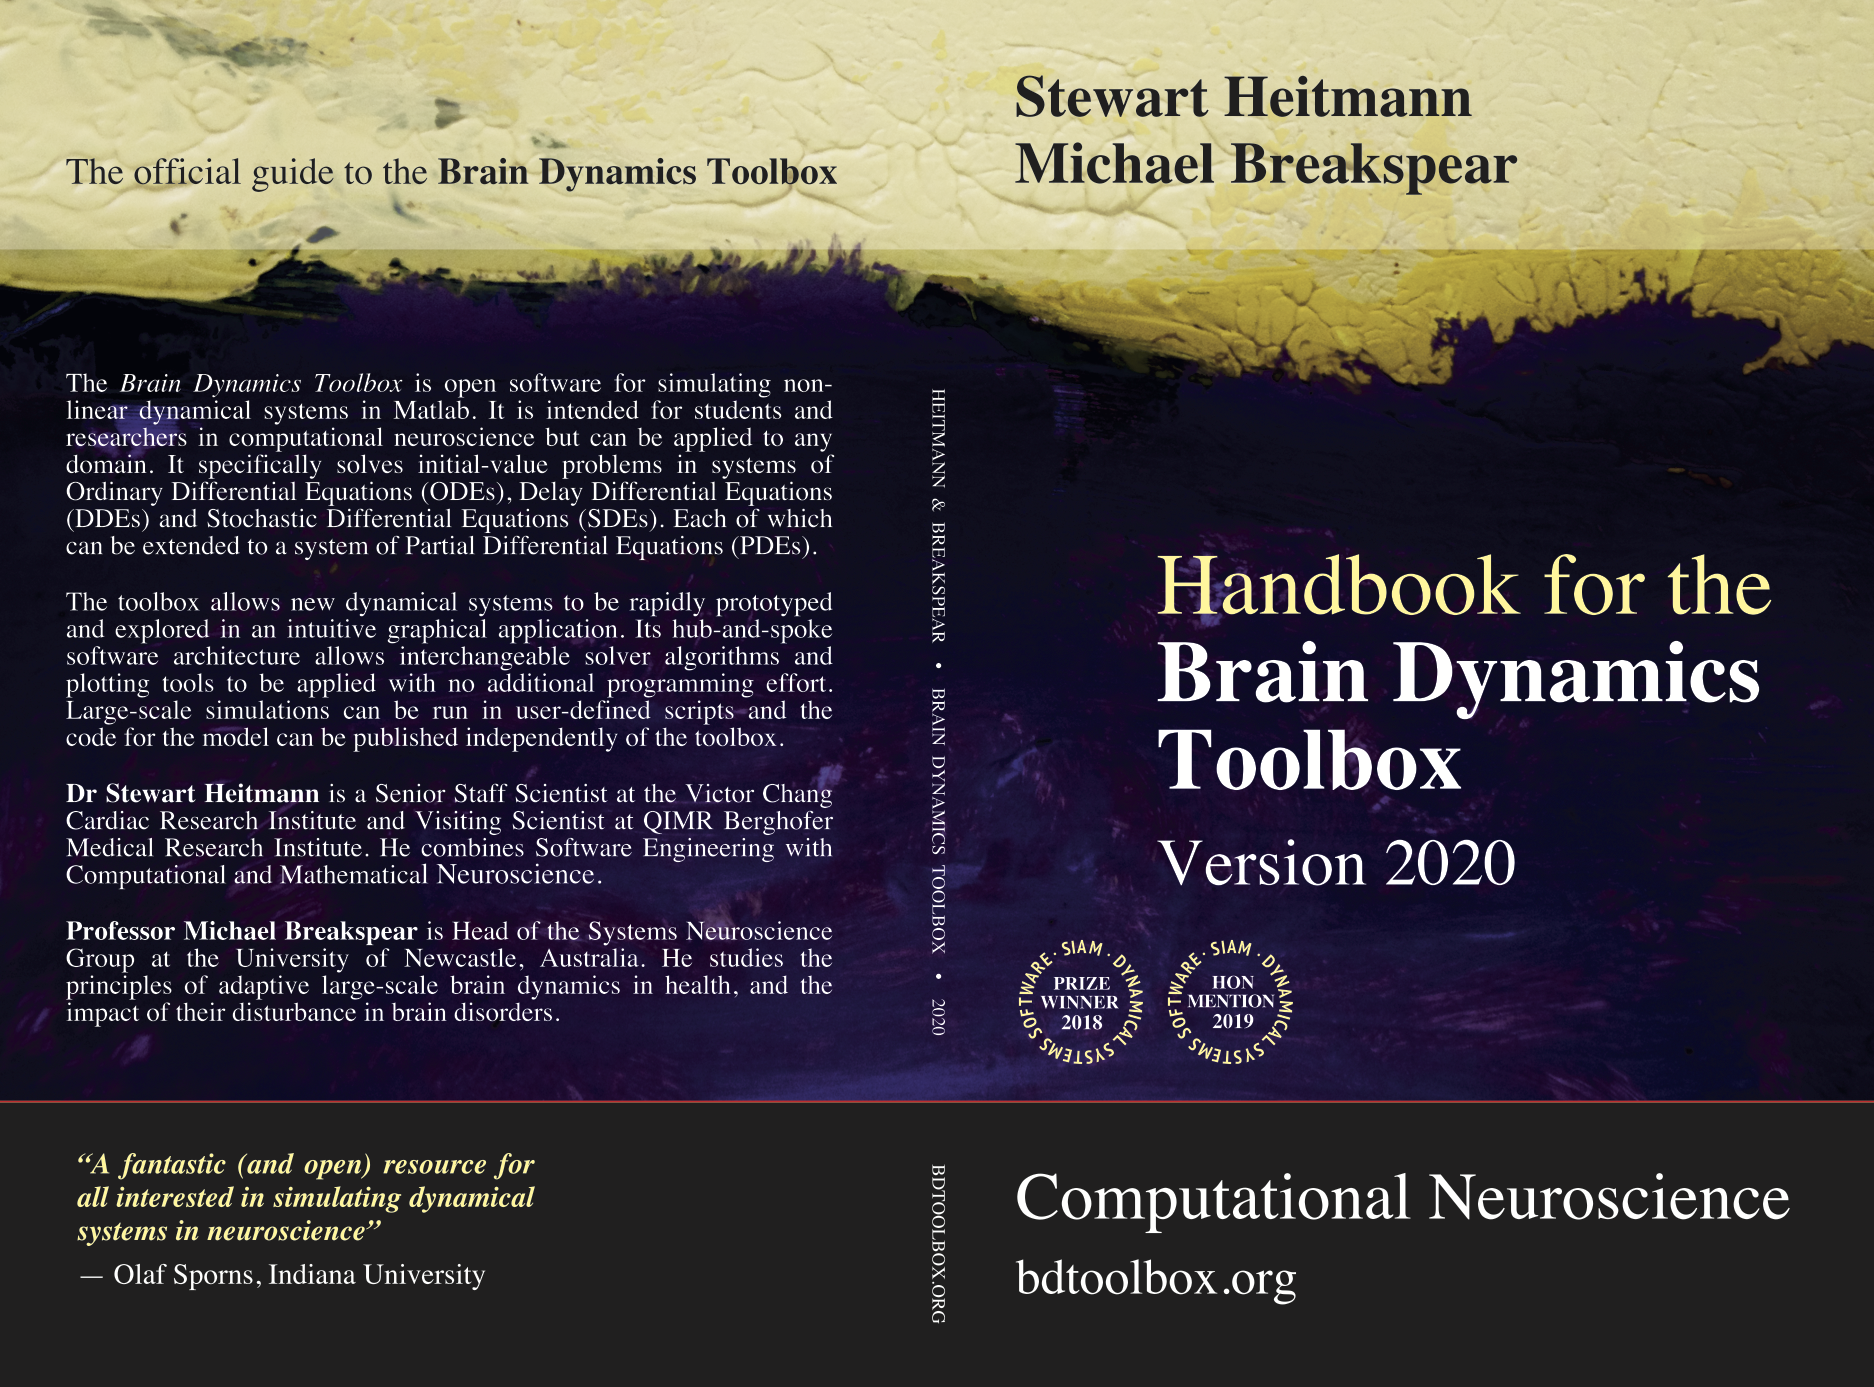 Handbook for the Brain Dynamics Toolbox BookCover